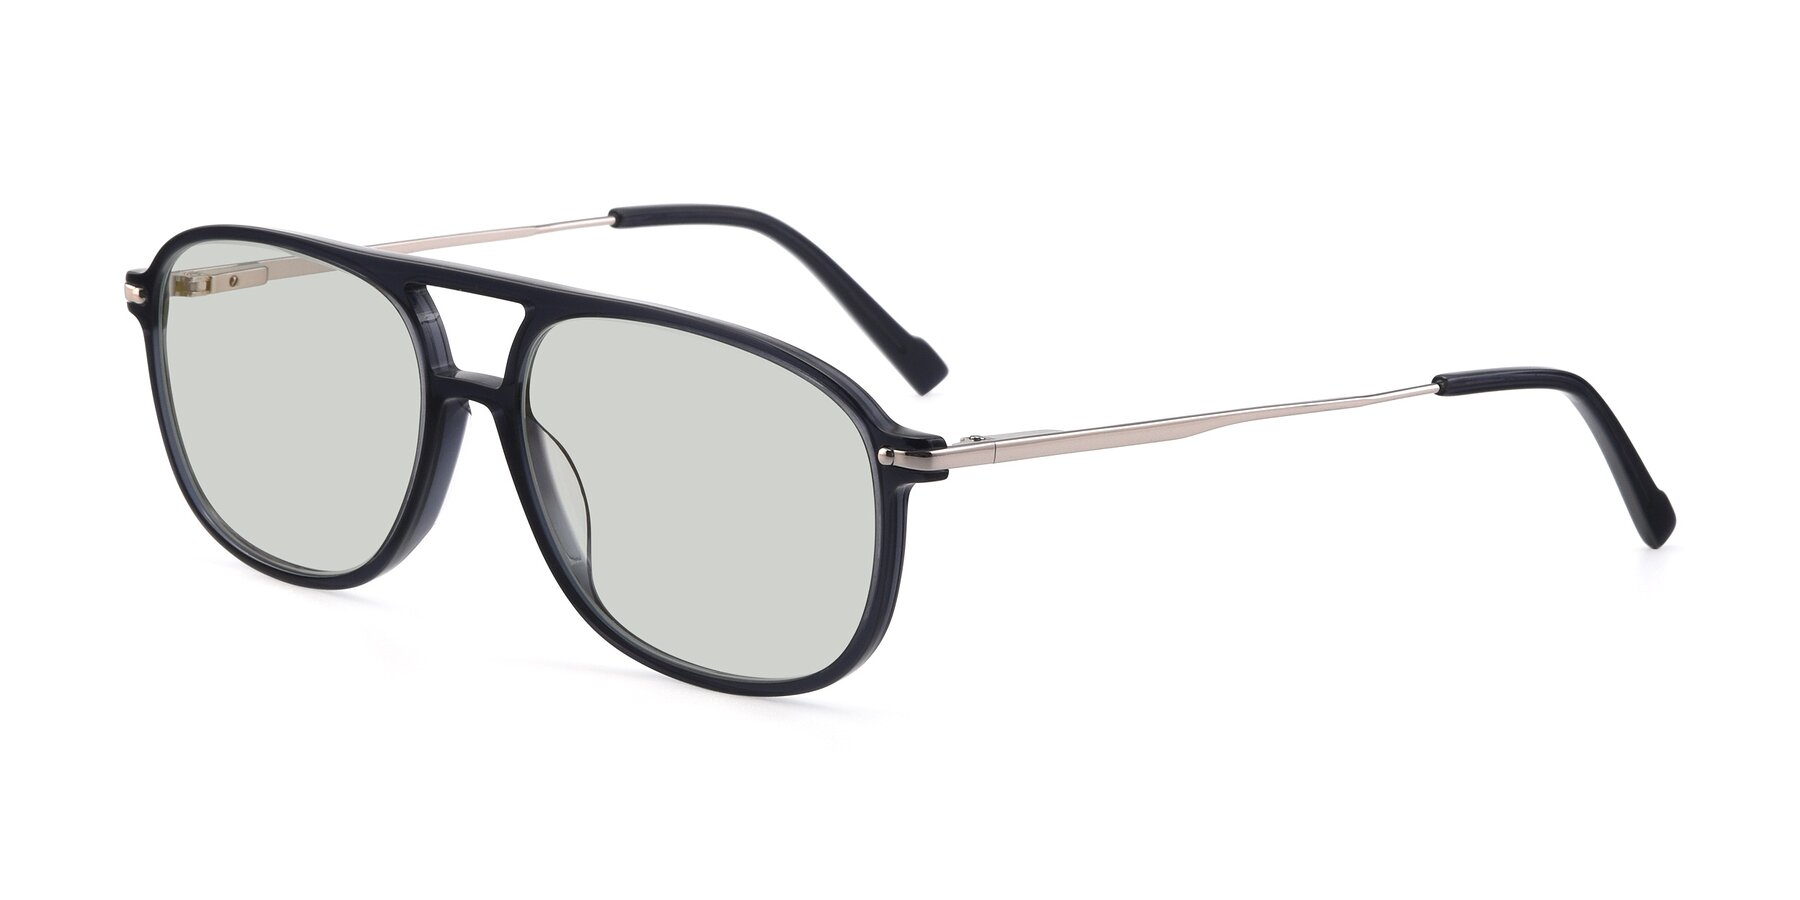 Angle of 17580 in Dark Bluish Gray with Light Green Tinted Lenses